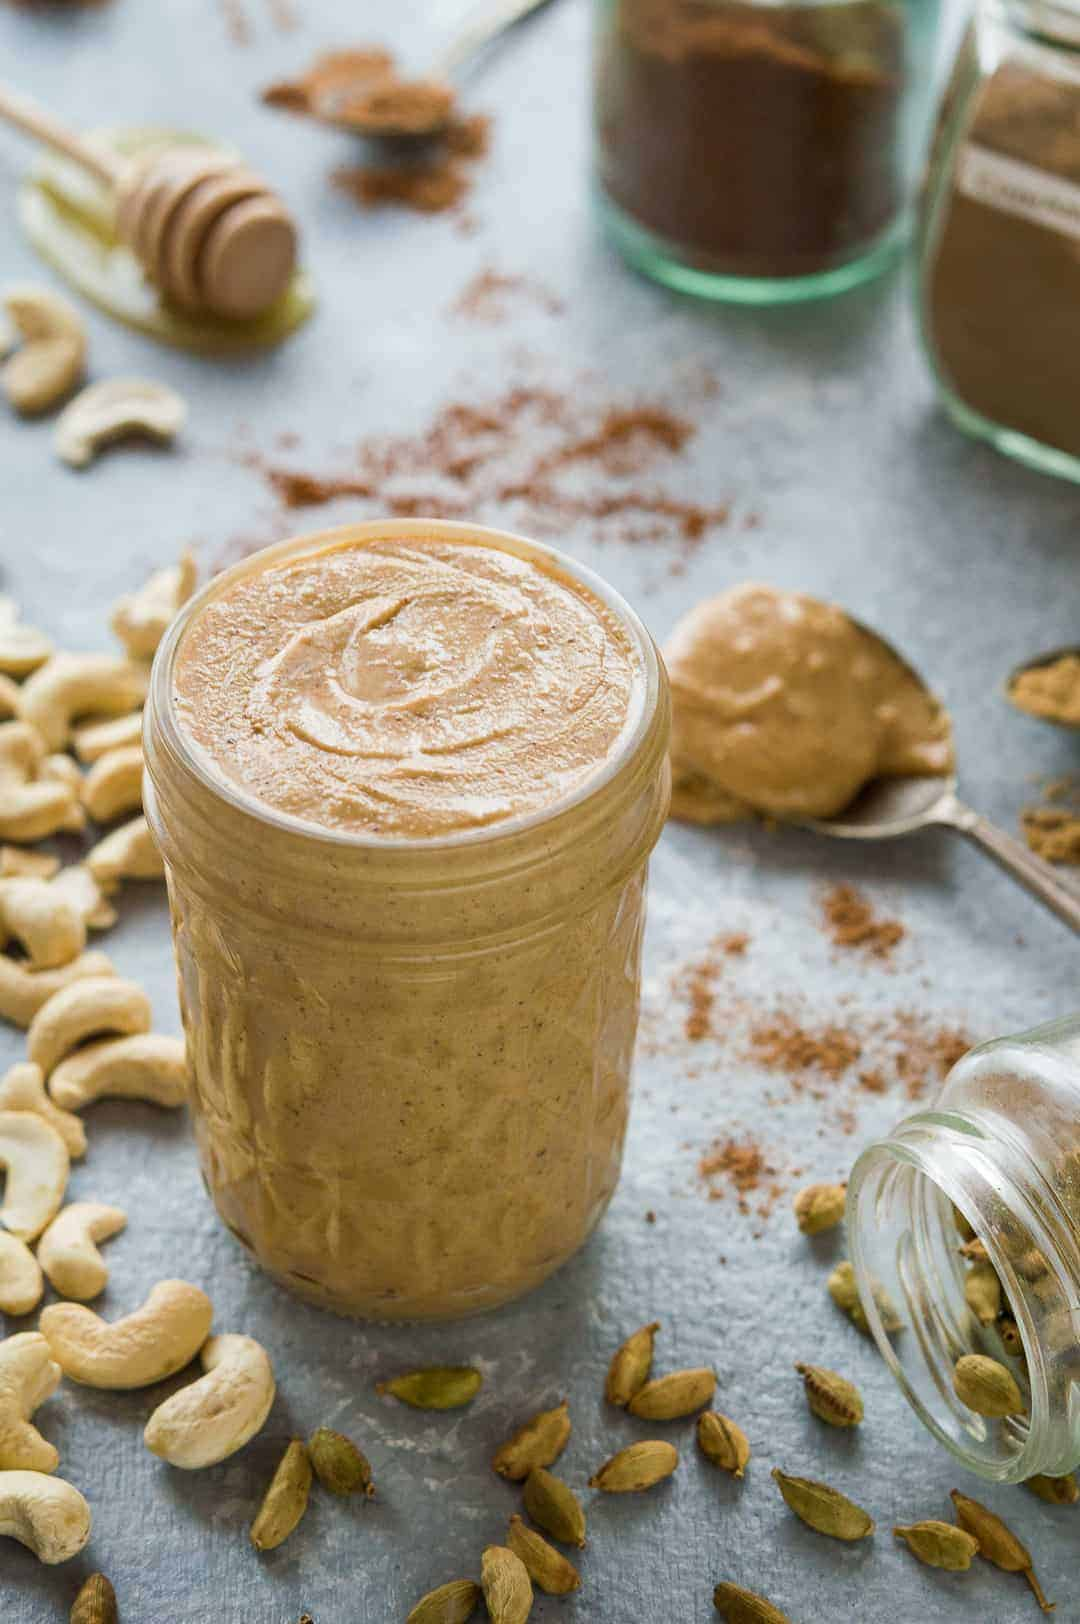 Chai spiced cashew butter - a delicious, flavourful homemade nut butter; you'll want to slather it on everything!